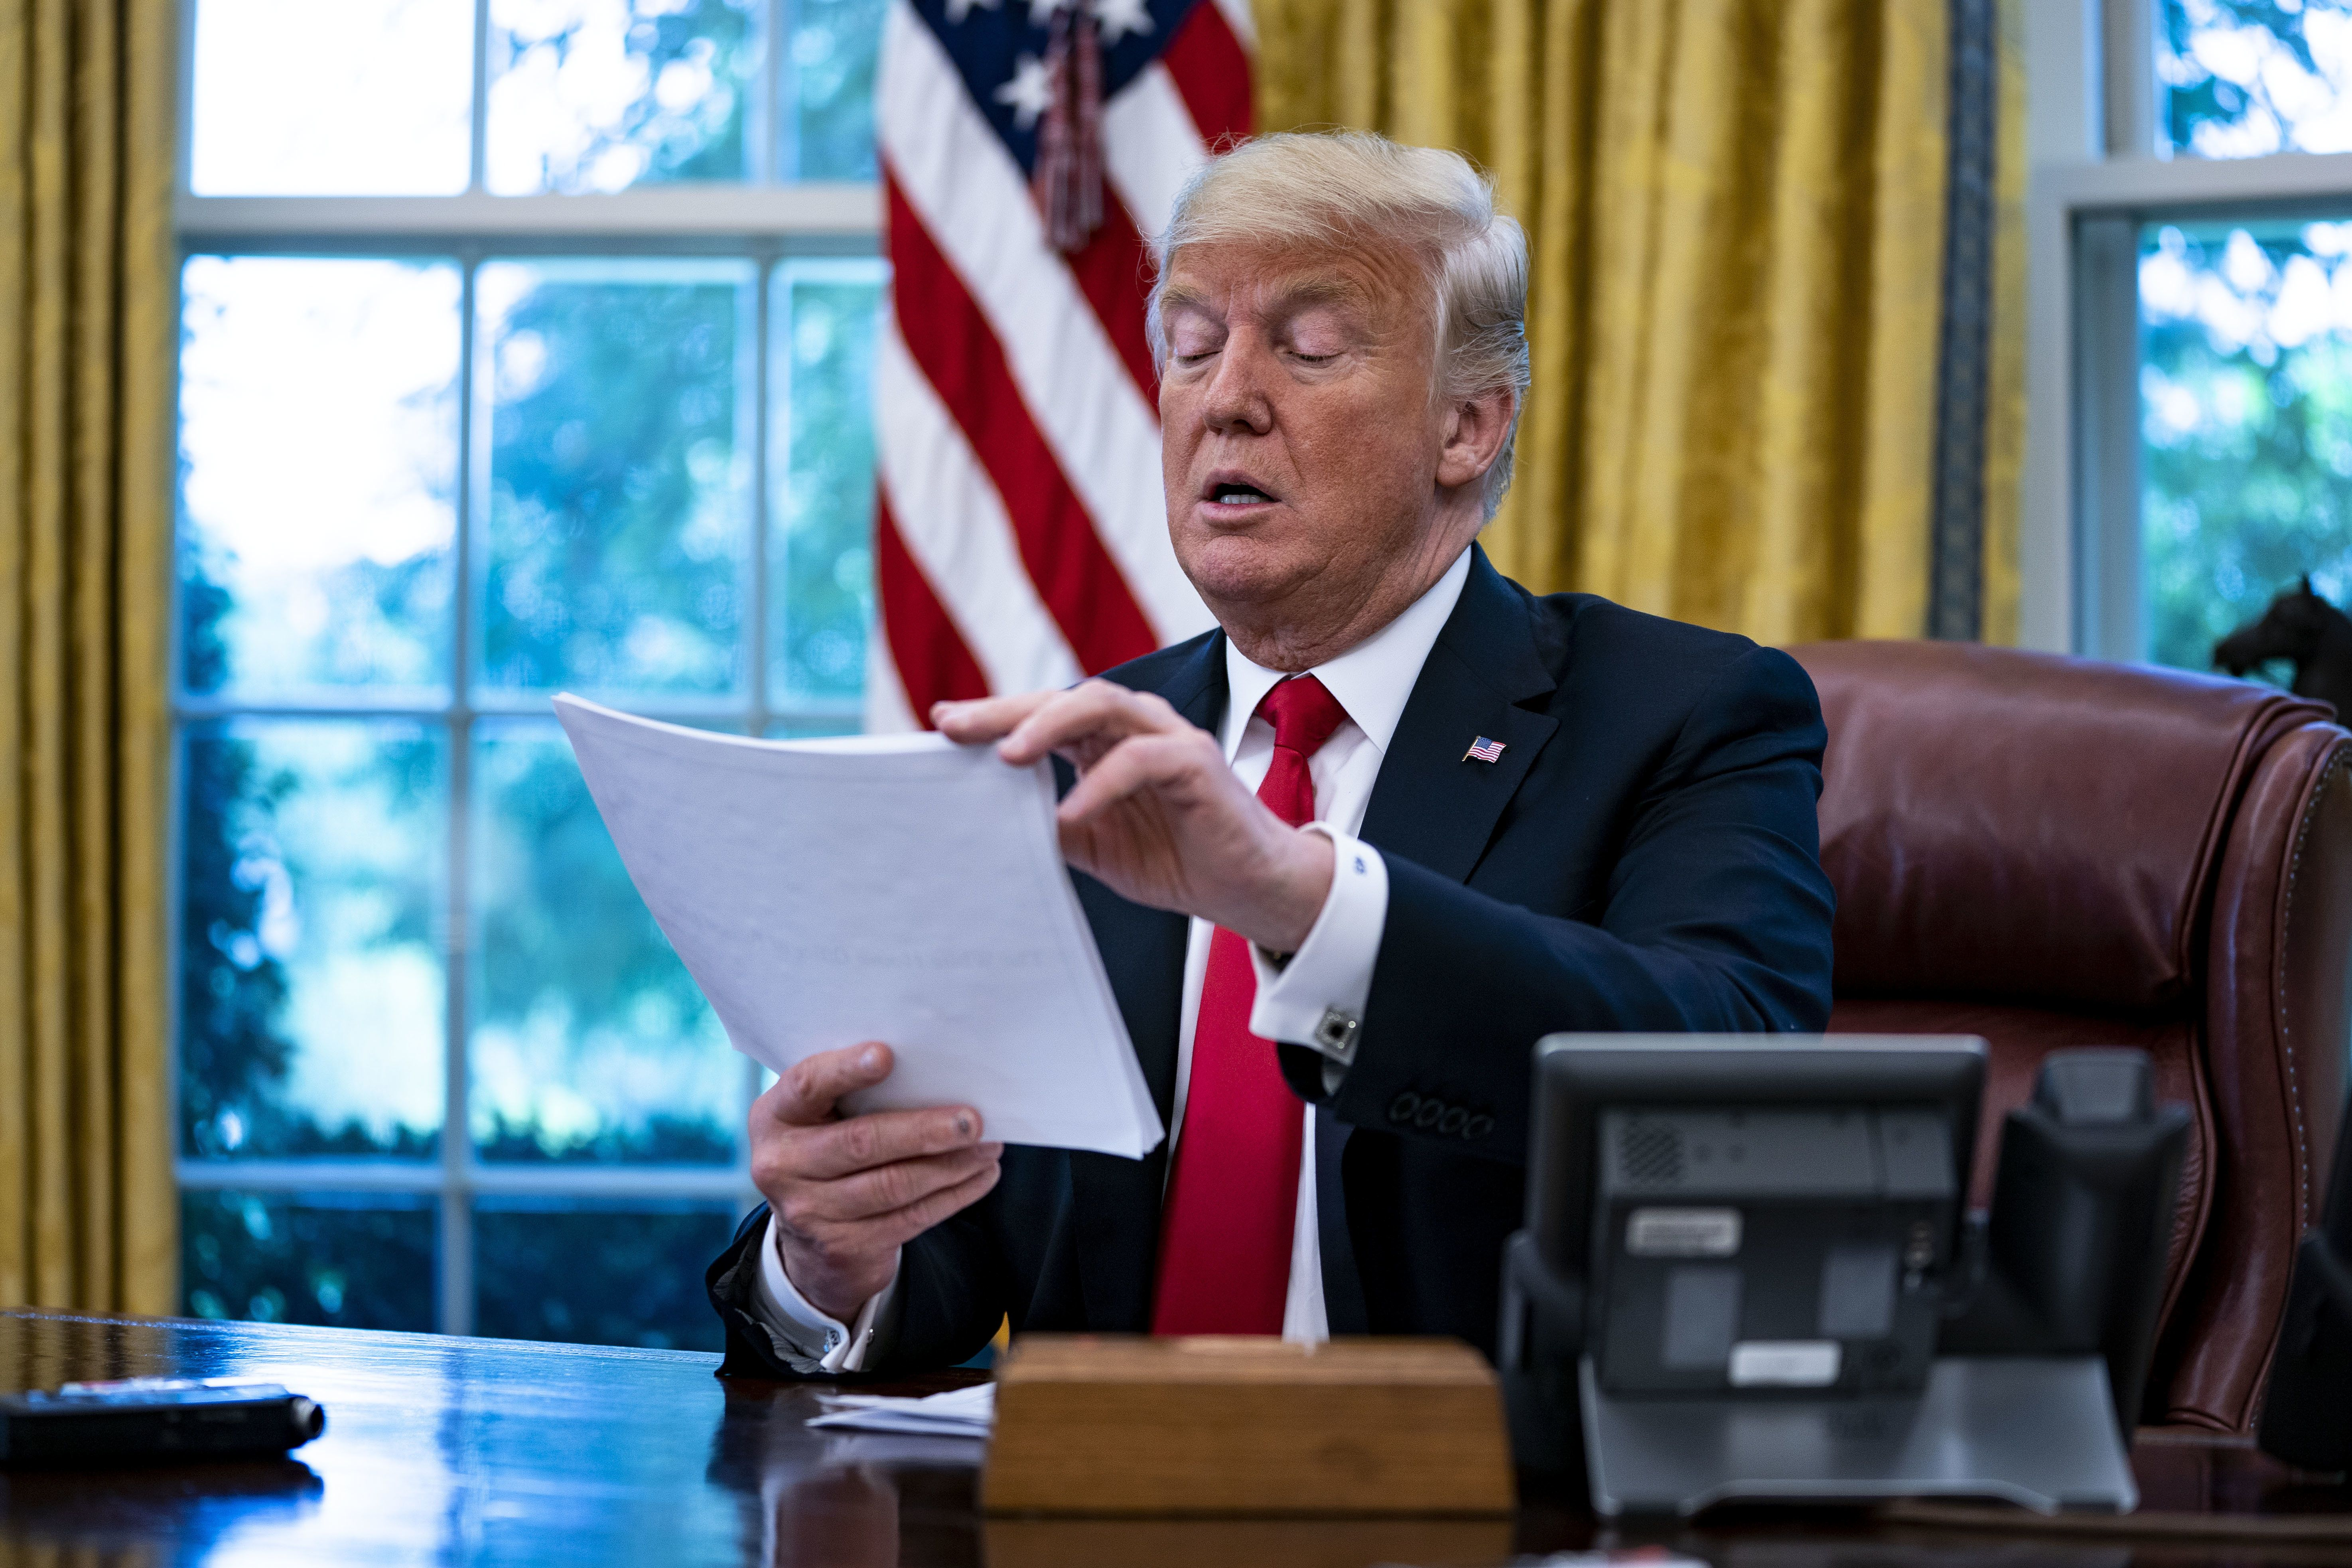 U.S. President Donald Trump reviews papers during an interview in the Oval Office of the White House in Washington, D.C., U.S., on Thursday, Aug. 30, 2018. Trumpsaid he doesn't regret appointing Jerome Powell as Federal Reserve chairman, even after criticizing interest rate increases by the central bank. Photographer: Al Drago/Bloomberg via Getty Images